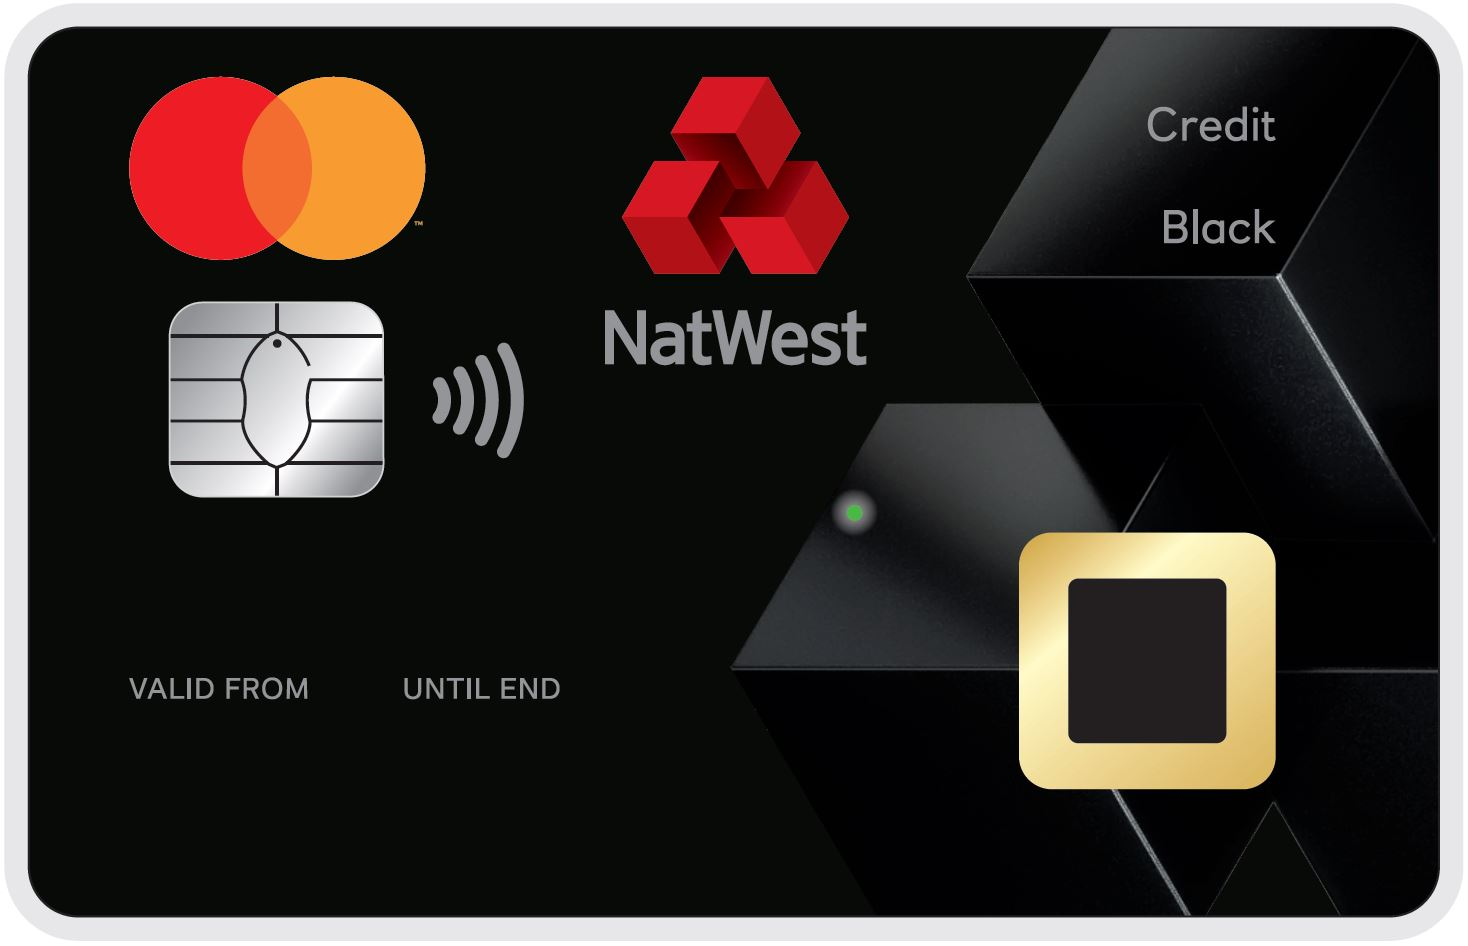 NatWest to launch biometric credit card